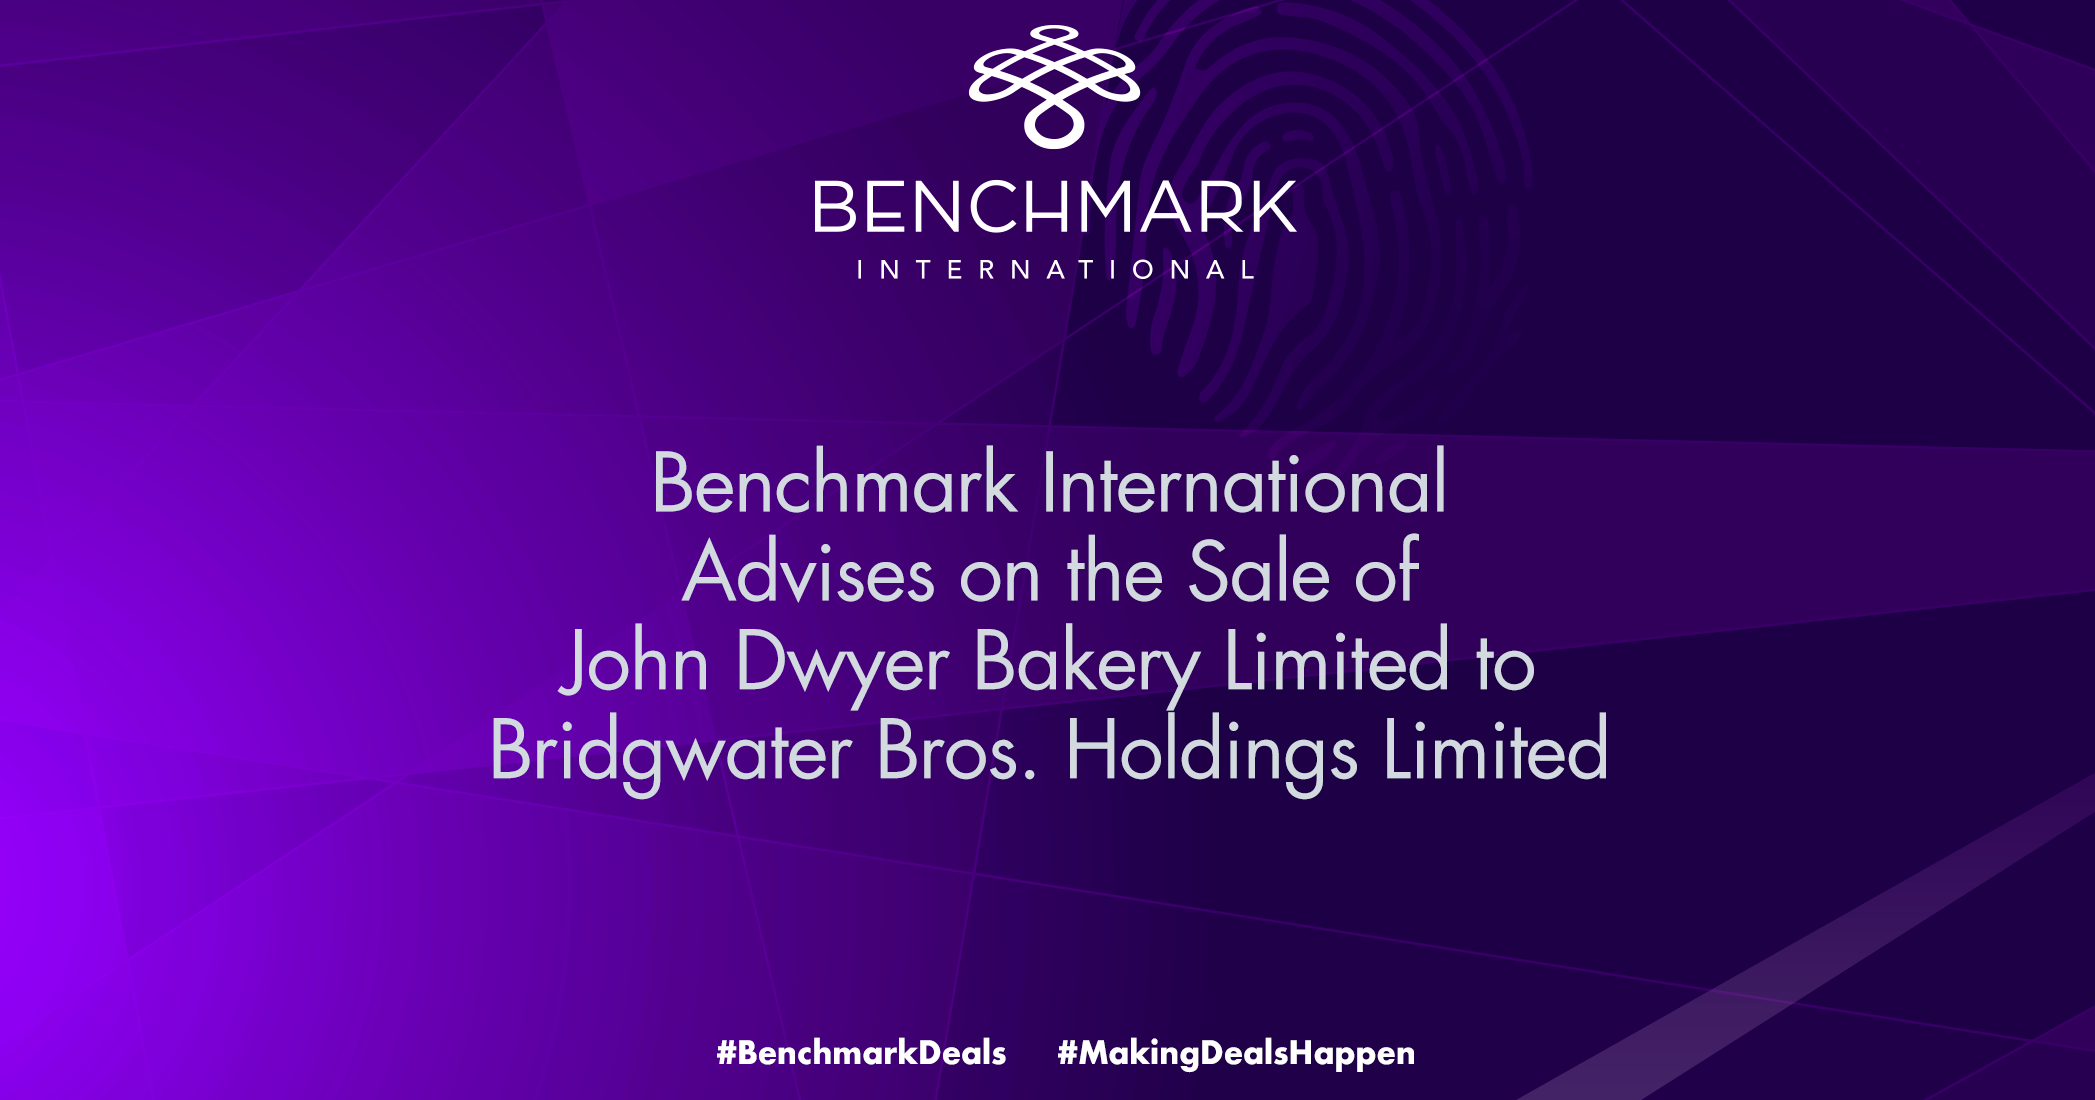 Benchmark International Completes the Sale of John Dwyer Bakery Limited to Bridgwater Bros. Holdings Limited